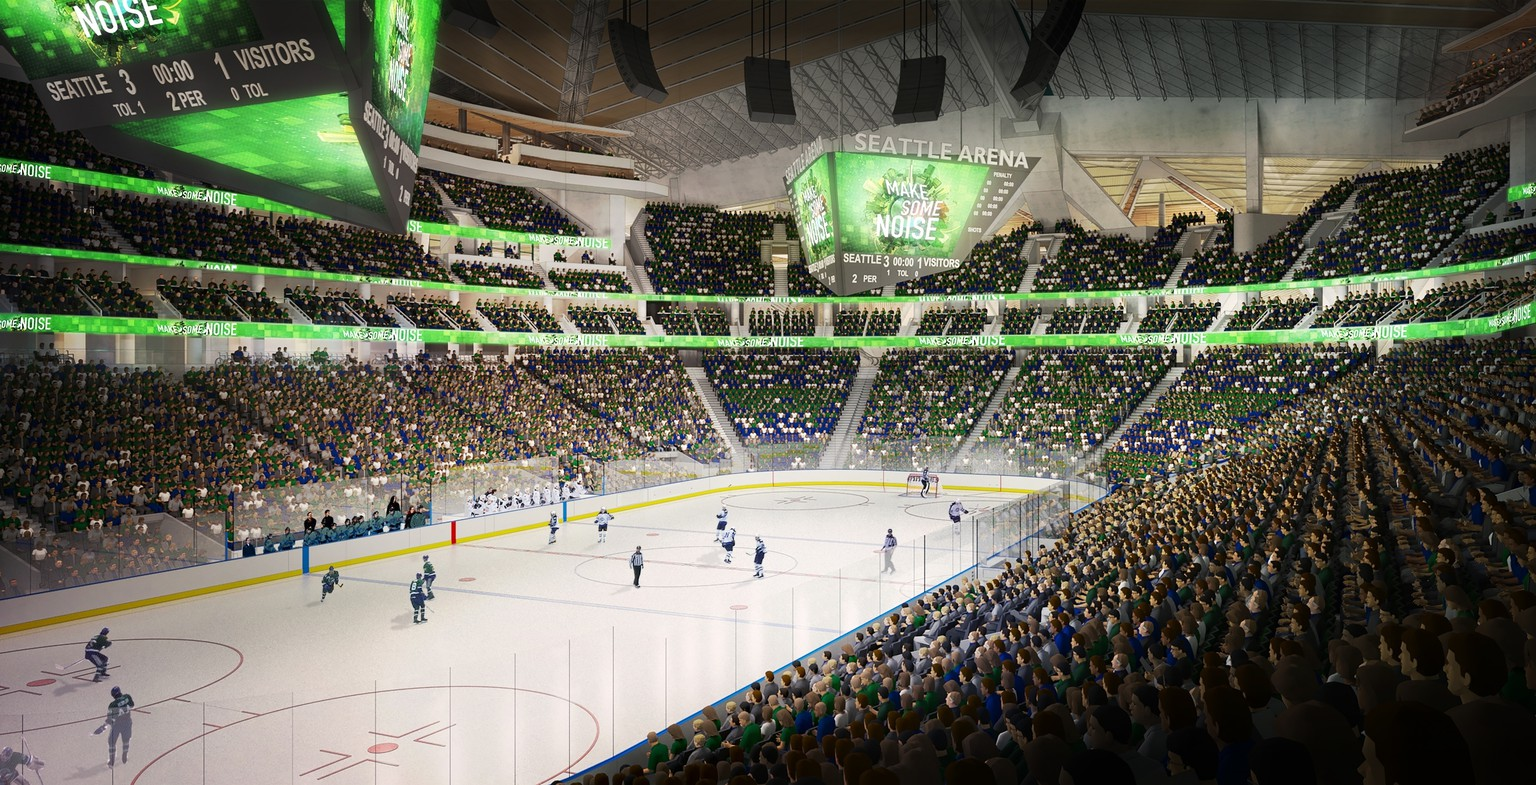 FILE - In this computer drawing provided by the Oak View Group, a proposed remodeled KeyArena in Seattle with an NHL hockey rink is shown.  Seattle Mayor Ed Murray announced Wednesday, June 7, 2017, that the city will enter into negotiations with the Oak View Group on a proposal for a privately-financed renovation of the city-owned KeyArena. Plans for the remodel would bring the building up to standards that could attract an NHL hockey or NBA basketball team once completed. (Oak View Group/via AP)